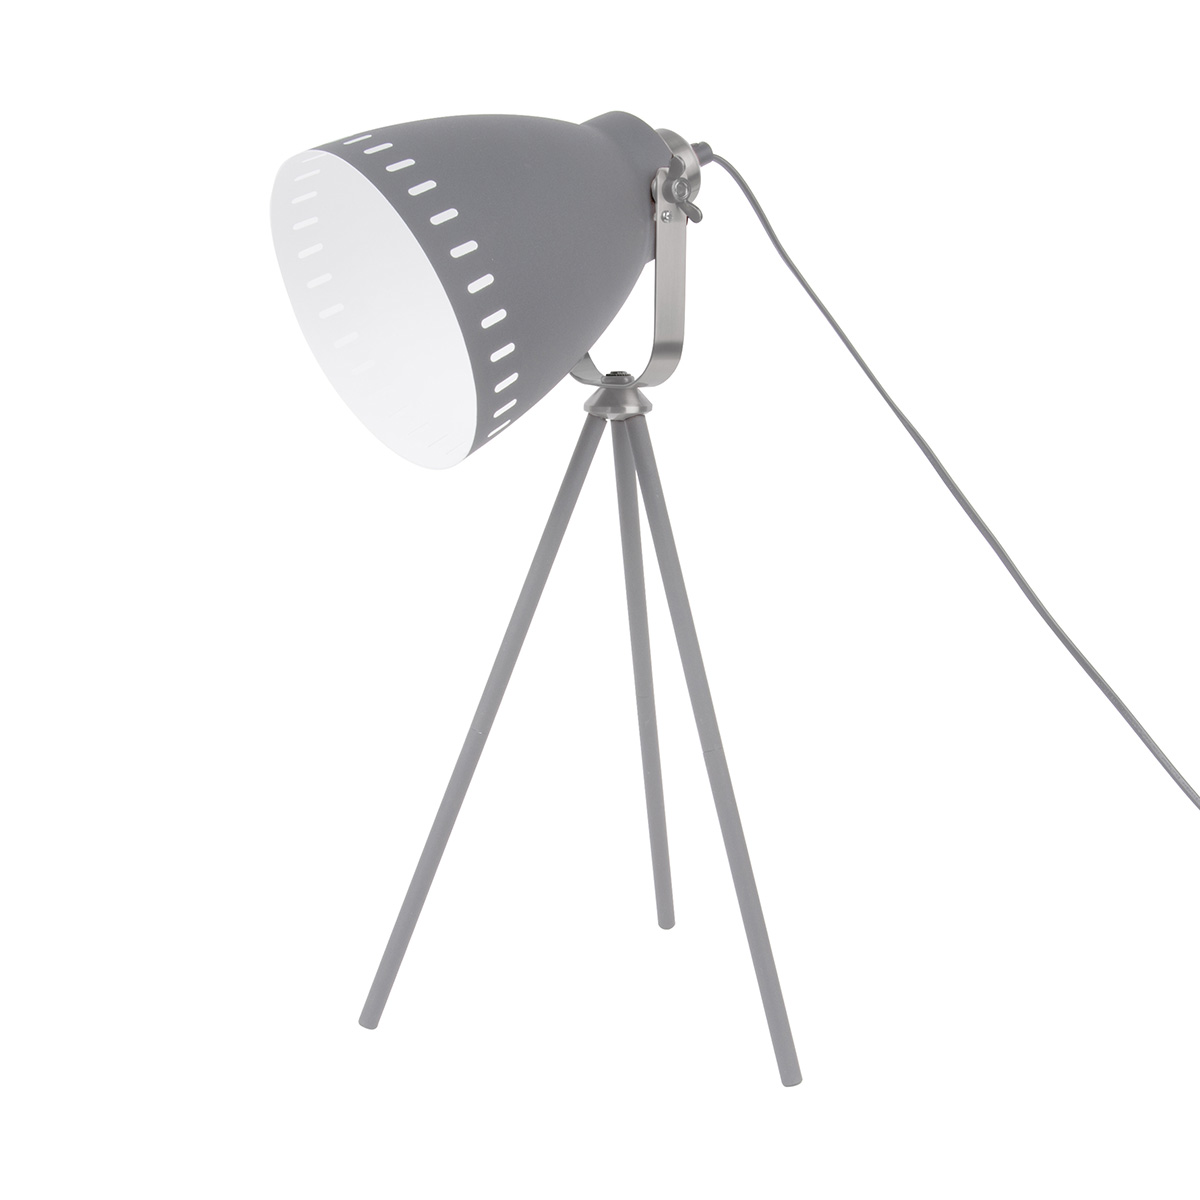 Image of   Leitmotiv bordlampe - Mingle LM 1617 - Grå